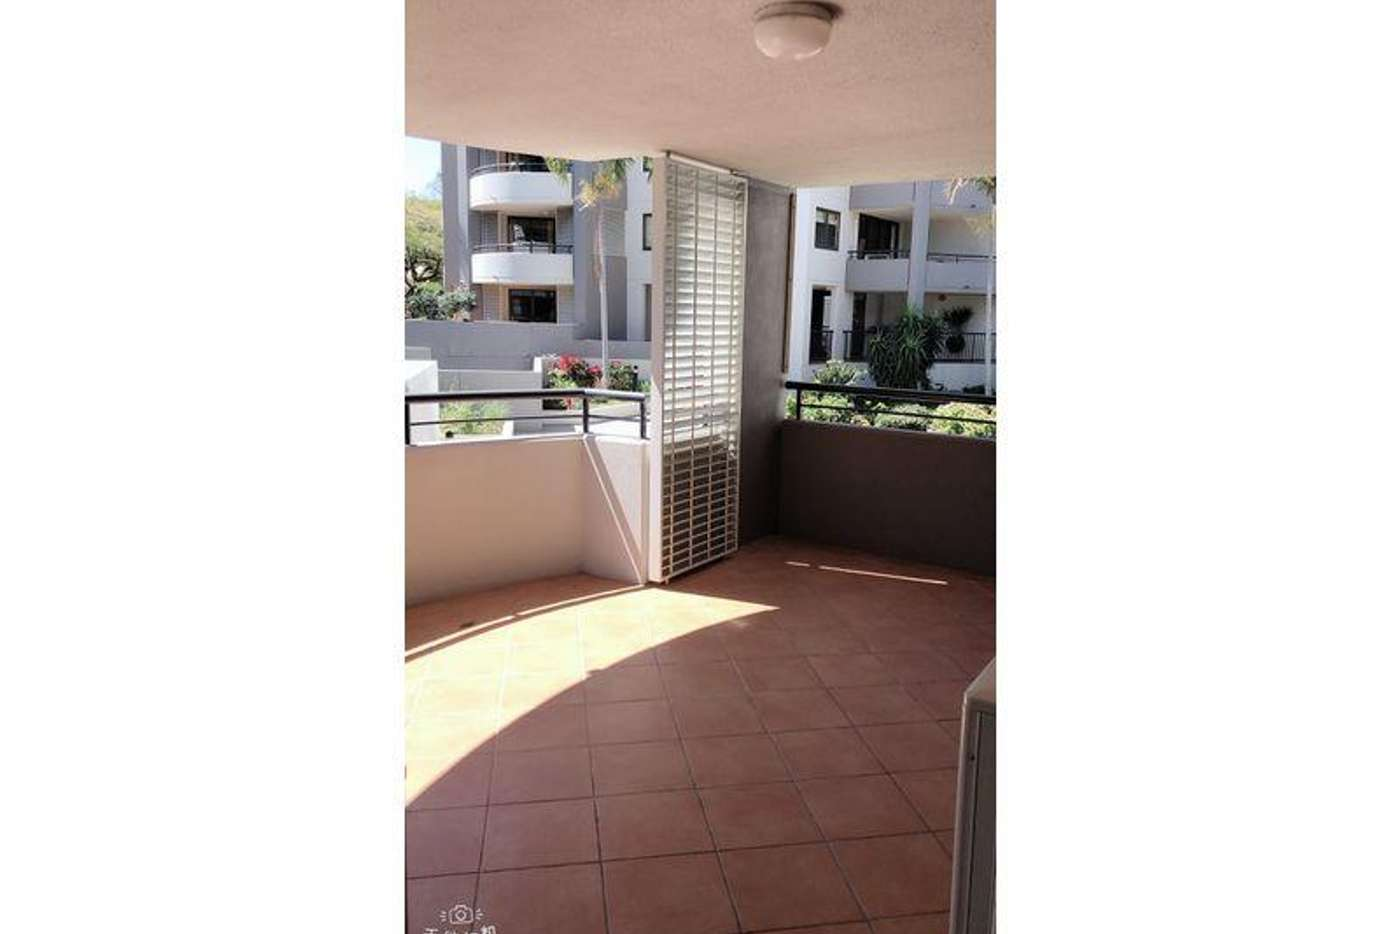 Sixth view of Homely apartment listing, 5 Chasely Street, Auchenflower QLD 4066